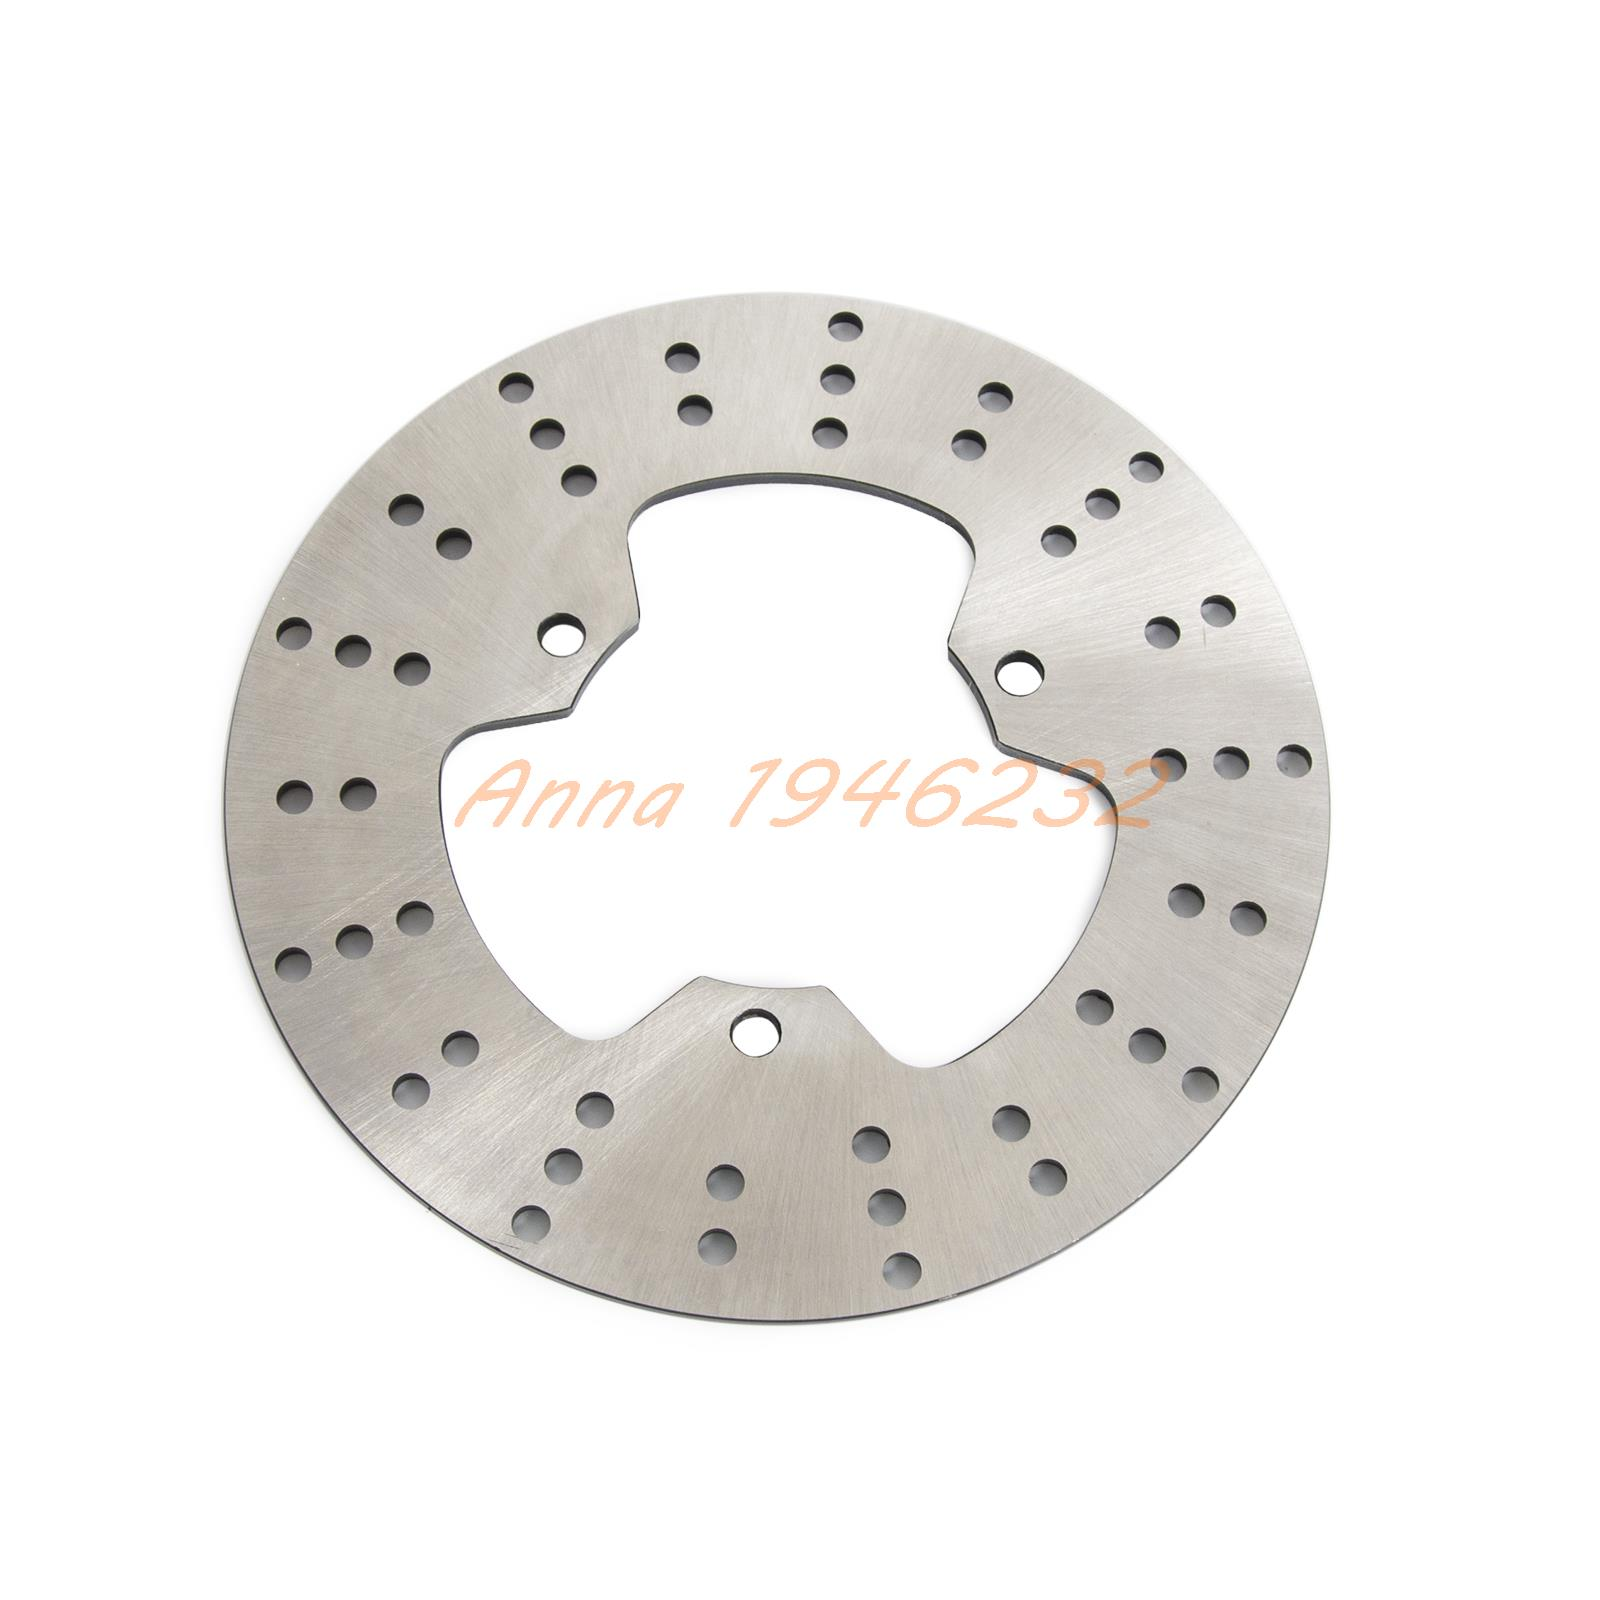 New Motorcycle Rear  Rotor Brake Disc For Yamaha TZR 125 250 TDR250  FX 250 Zeal (3YX1/2/4) 91-92<br>